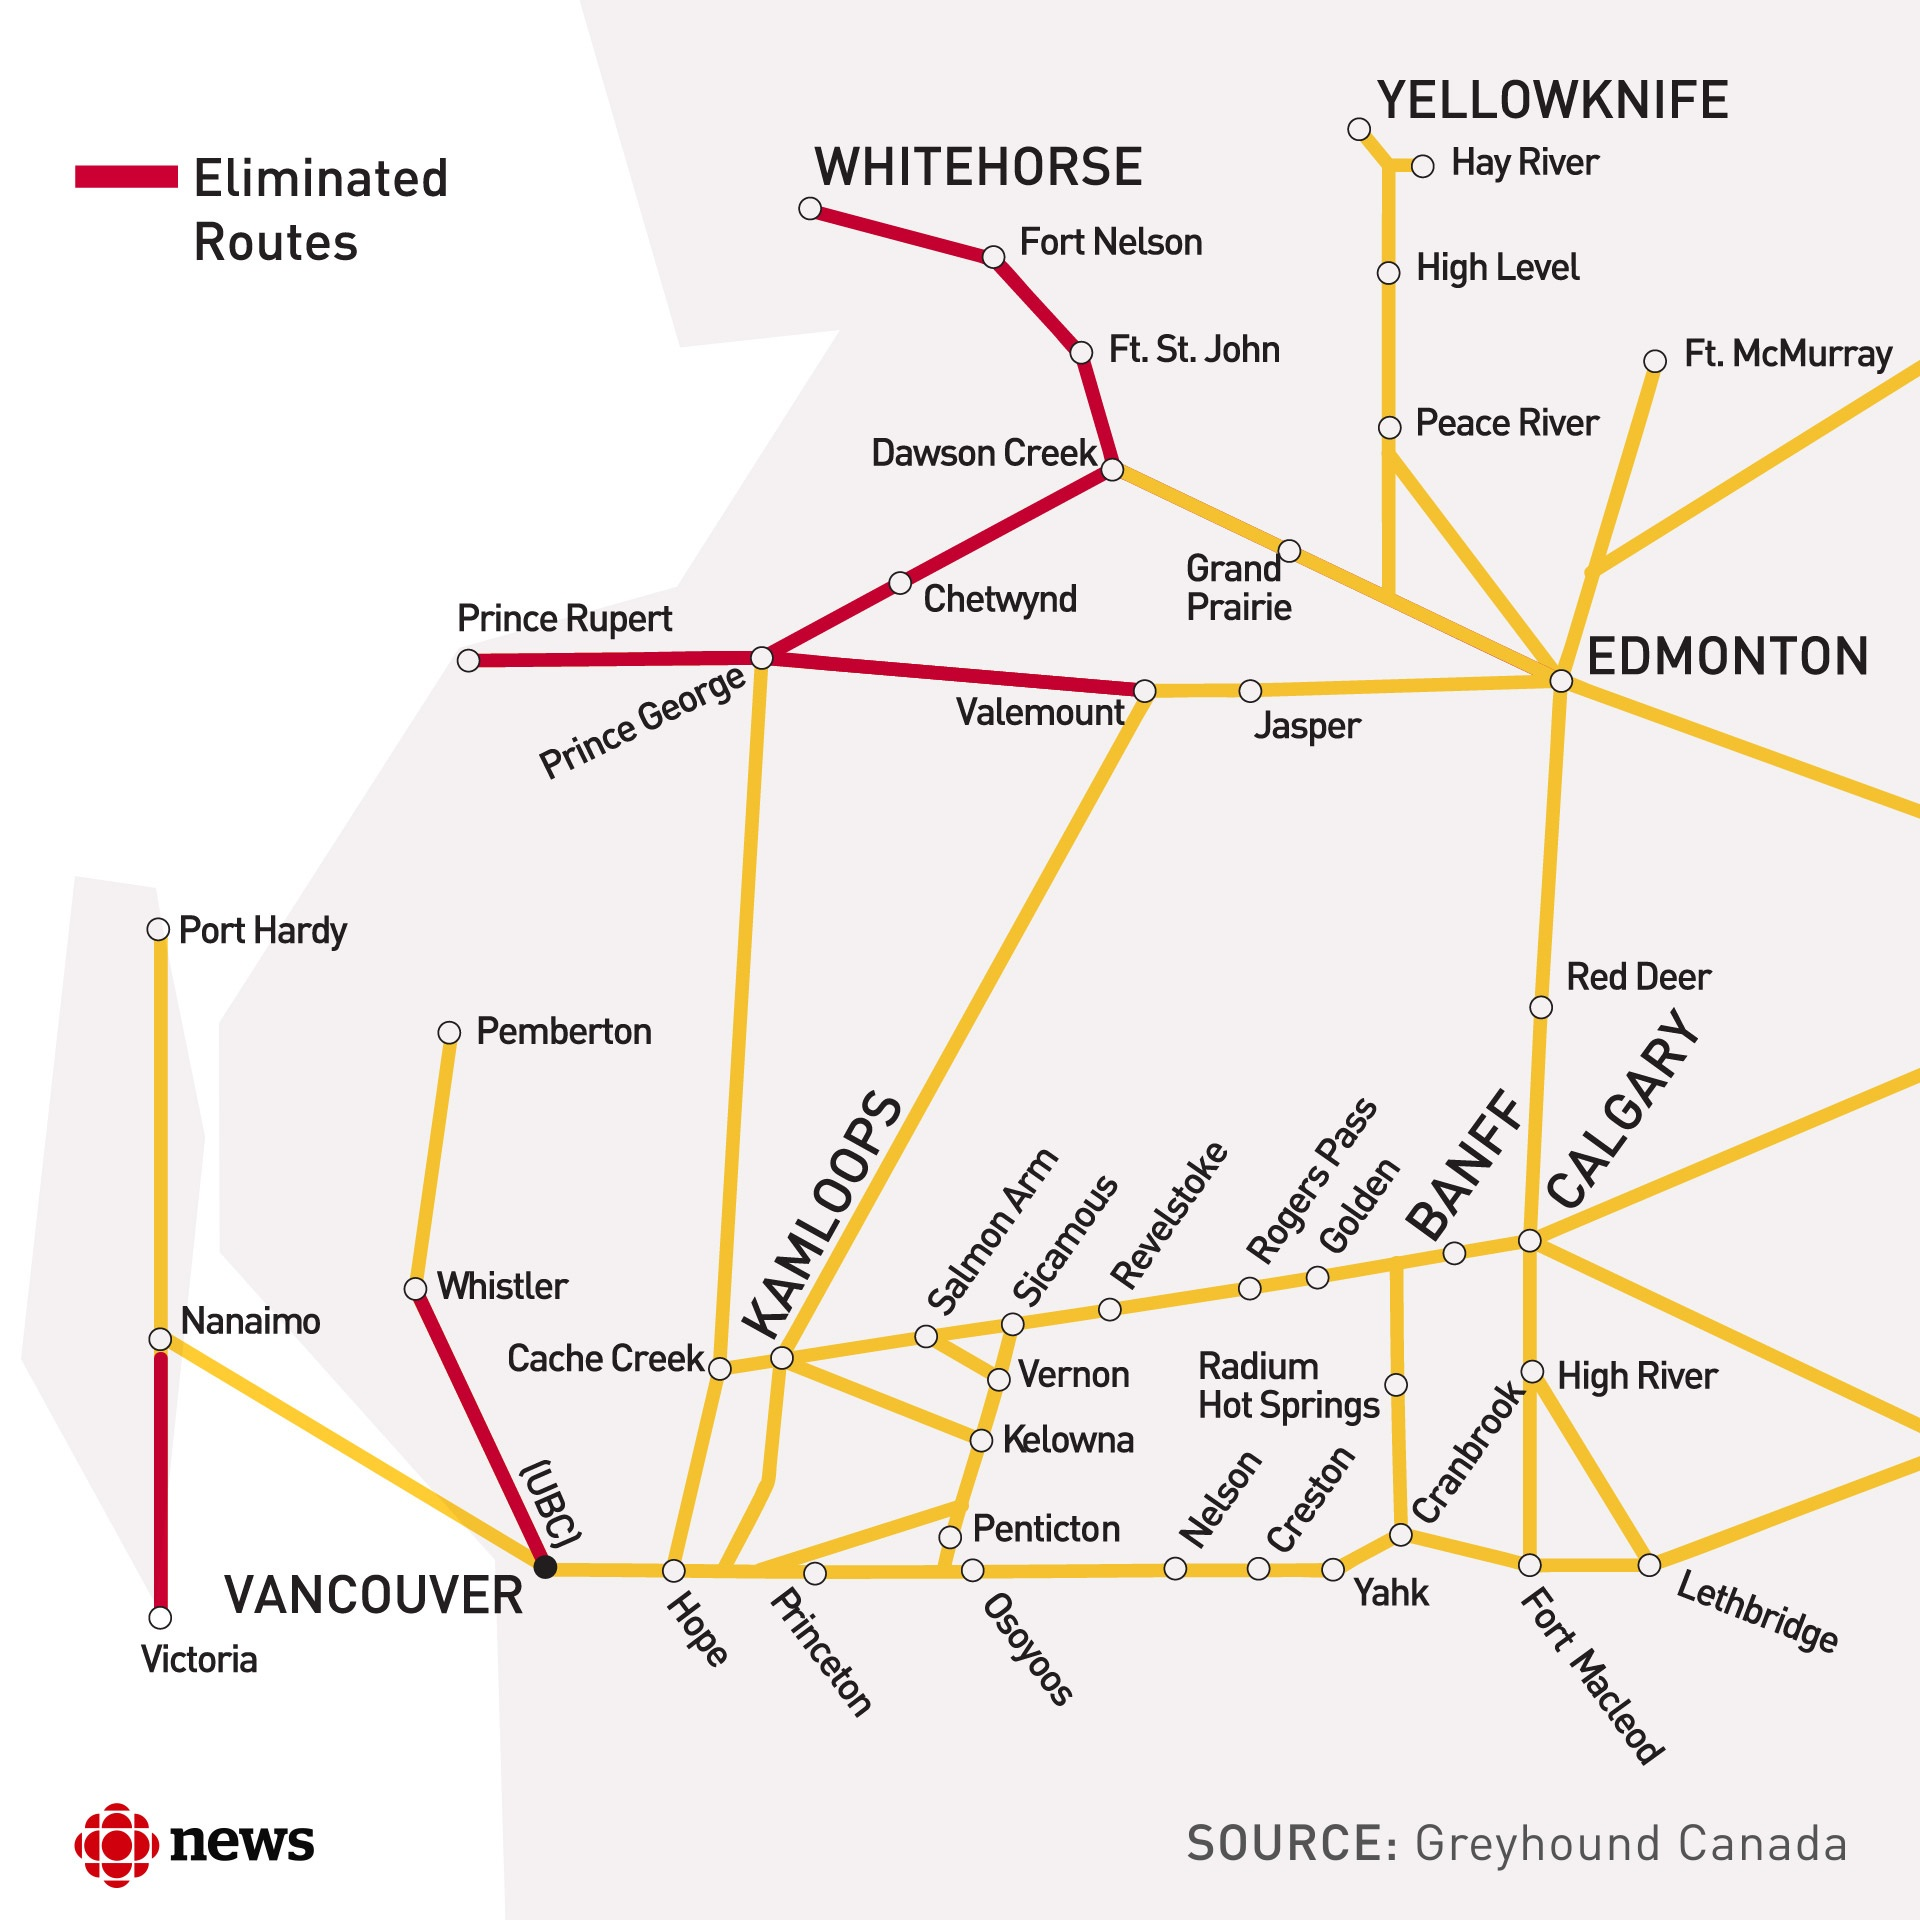 Greyhound Usa Map.It Leaves A Lot Of People Unsafe Cbc News